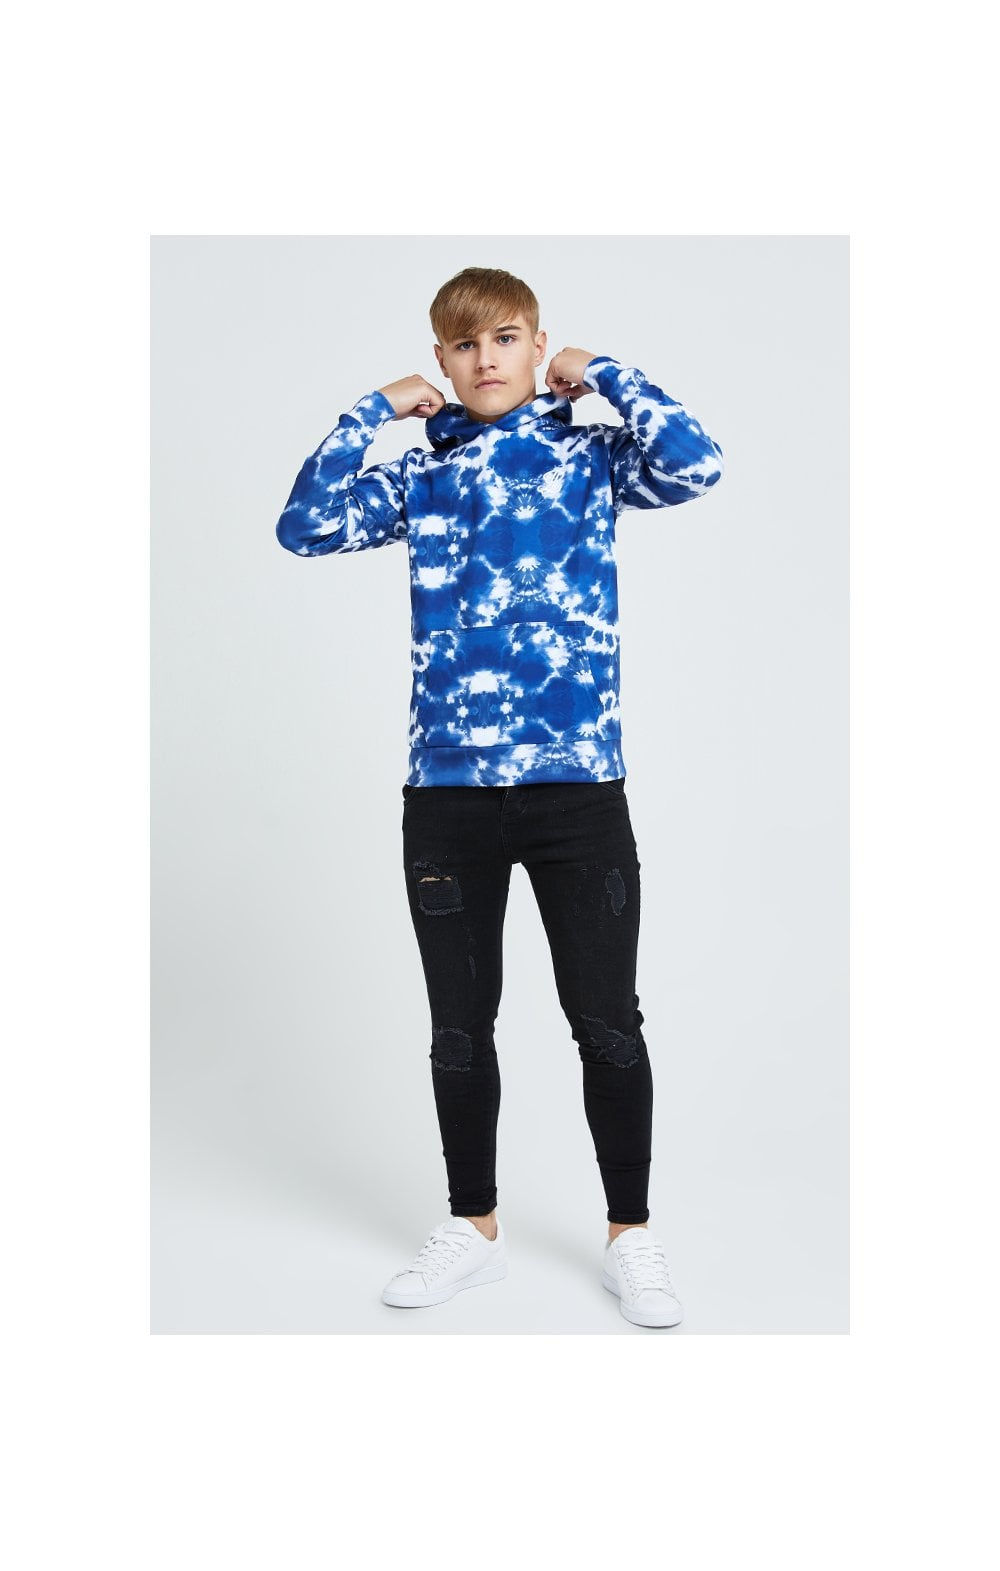 Load image into Gallery viewer, Illusive London Tie Dye Print Hoodie - Blue & White